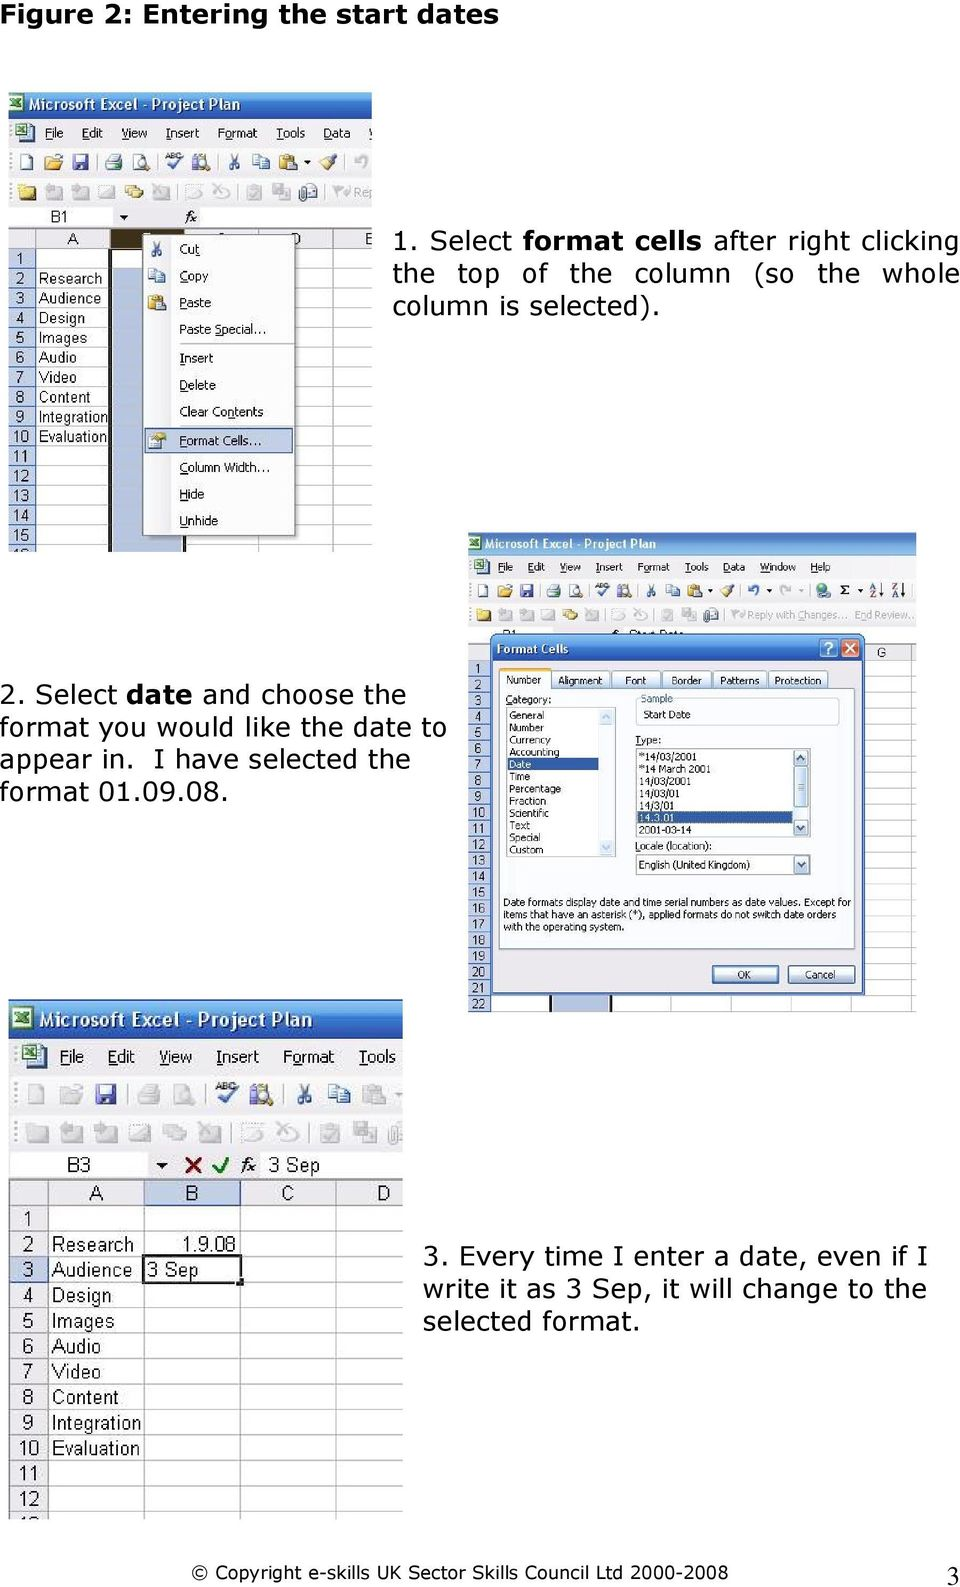 Select date and choose the format you would like the date to appear in. I have selected the format 01.